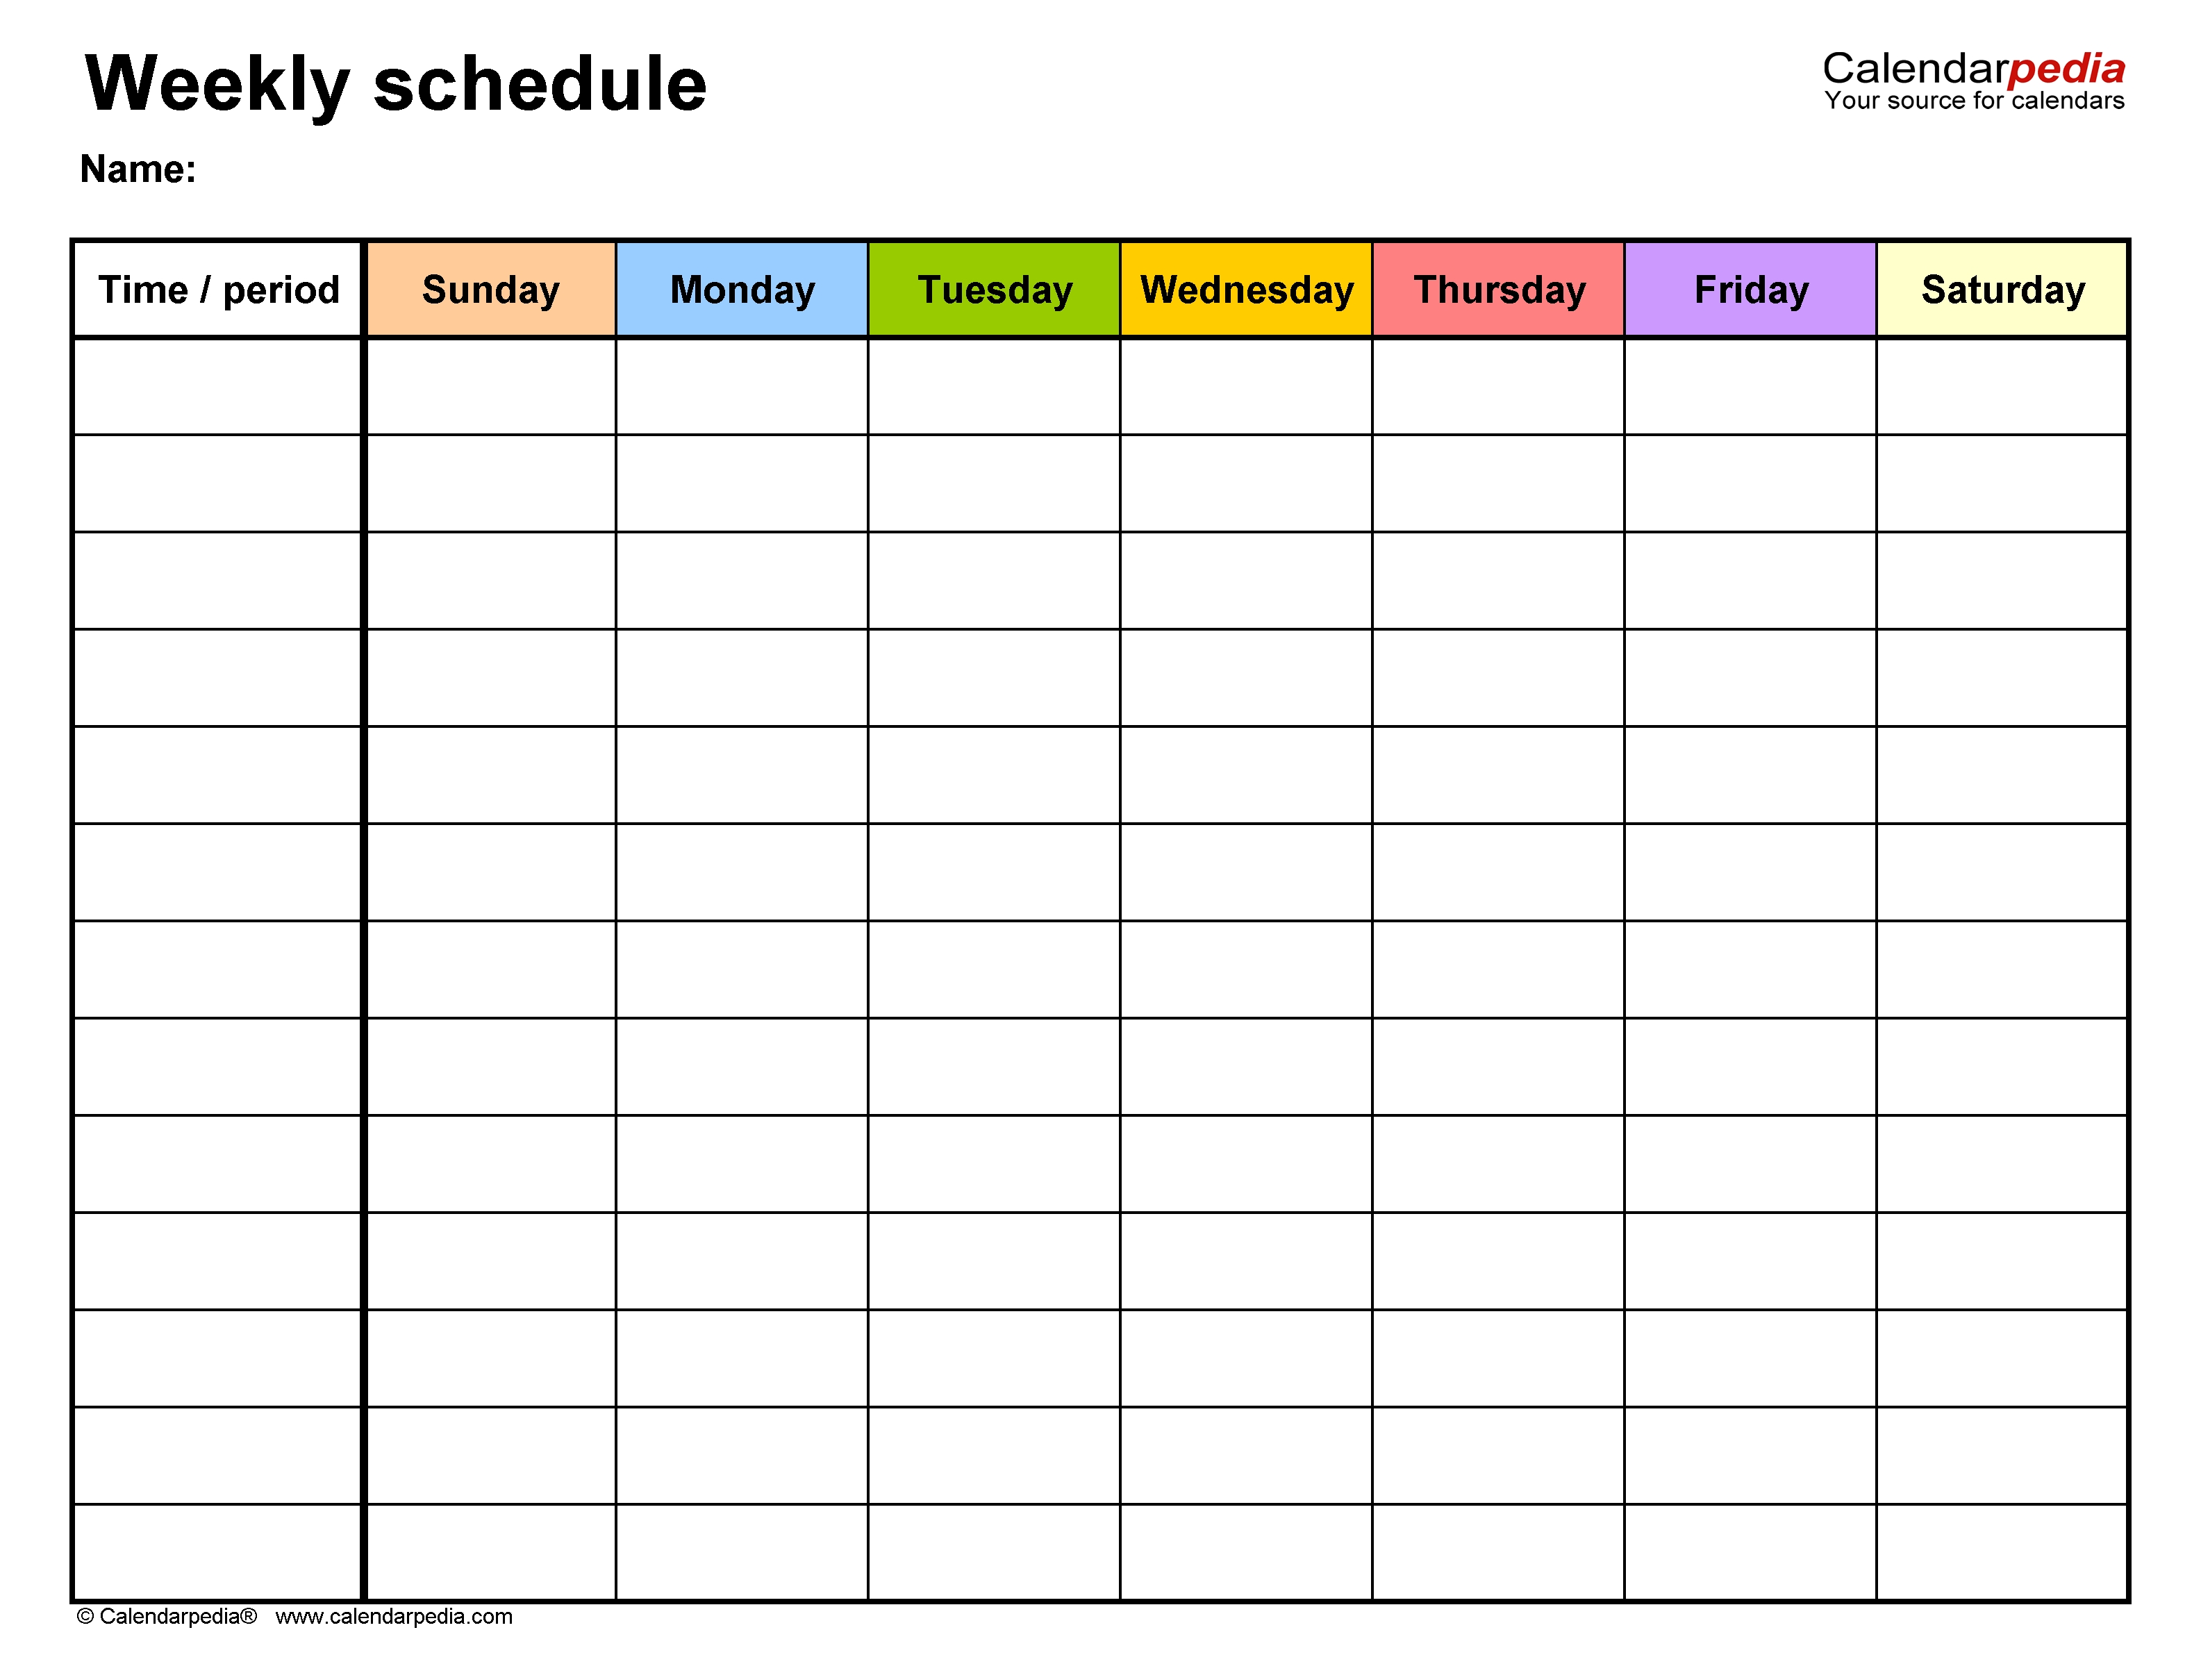 Free Weekly Schedule Templates For Word - 18 Templates  Monday To Sunday Calendar Template